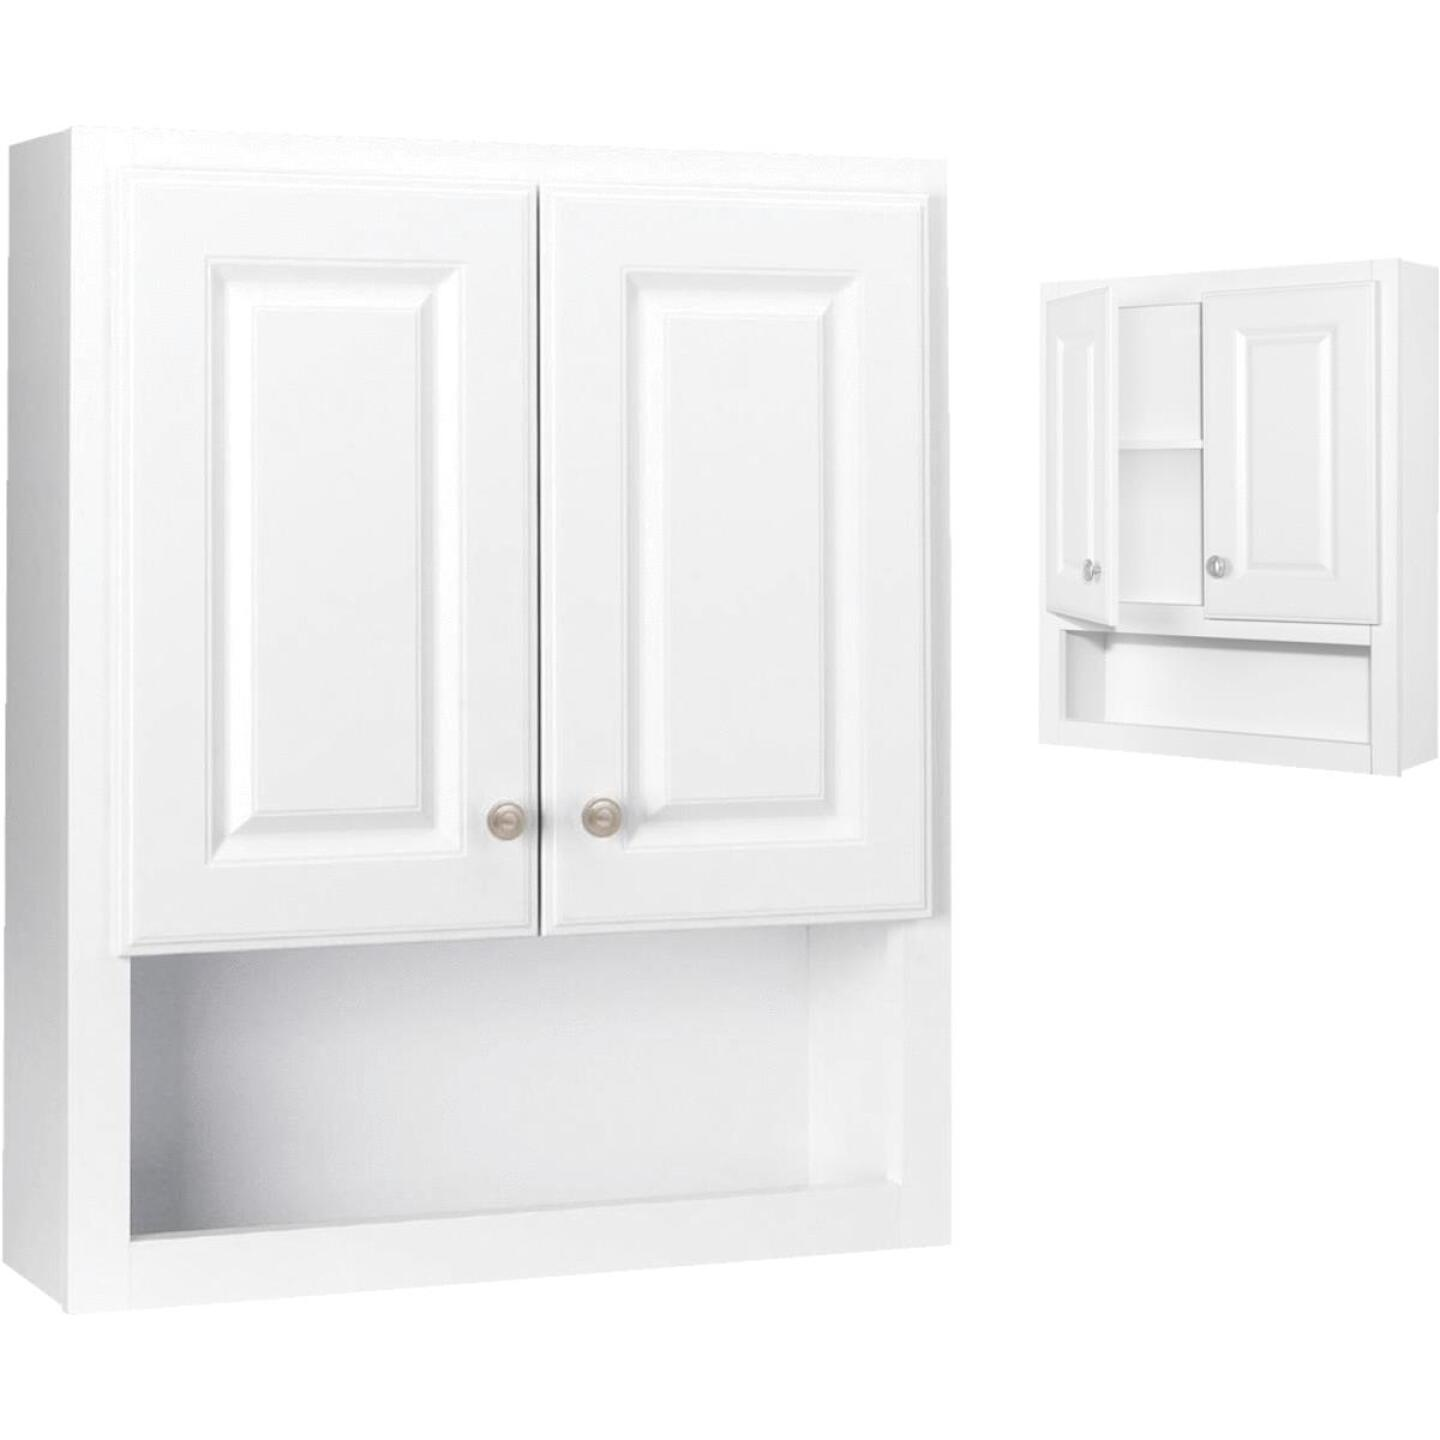 Continental Cabinets Modular Semi-Gloss White Finish 23-1/4 In. W. x 28 In. H. x 7-1/4 In. D. Wood Wall Bath Cabinet Image 1